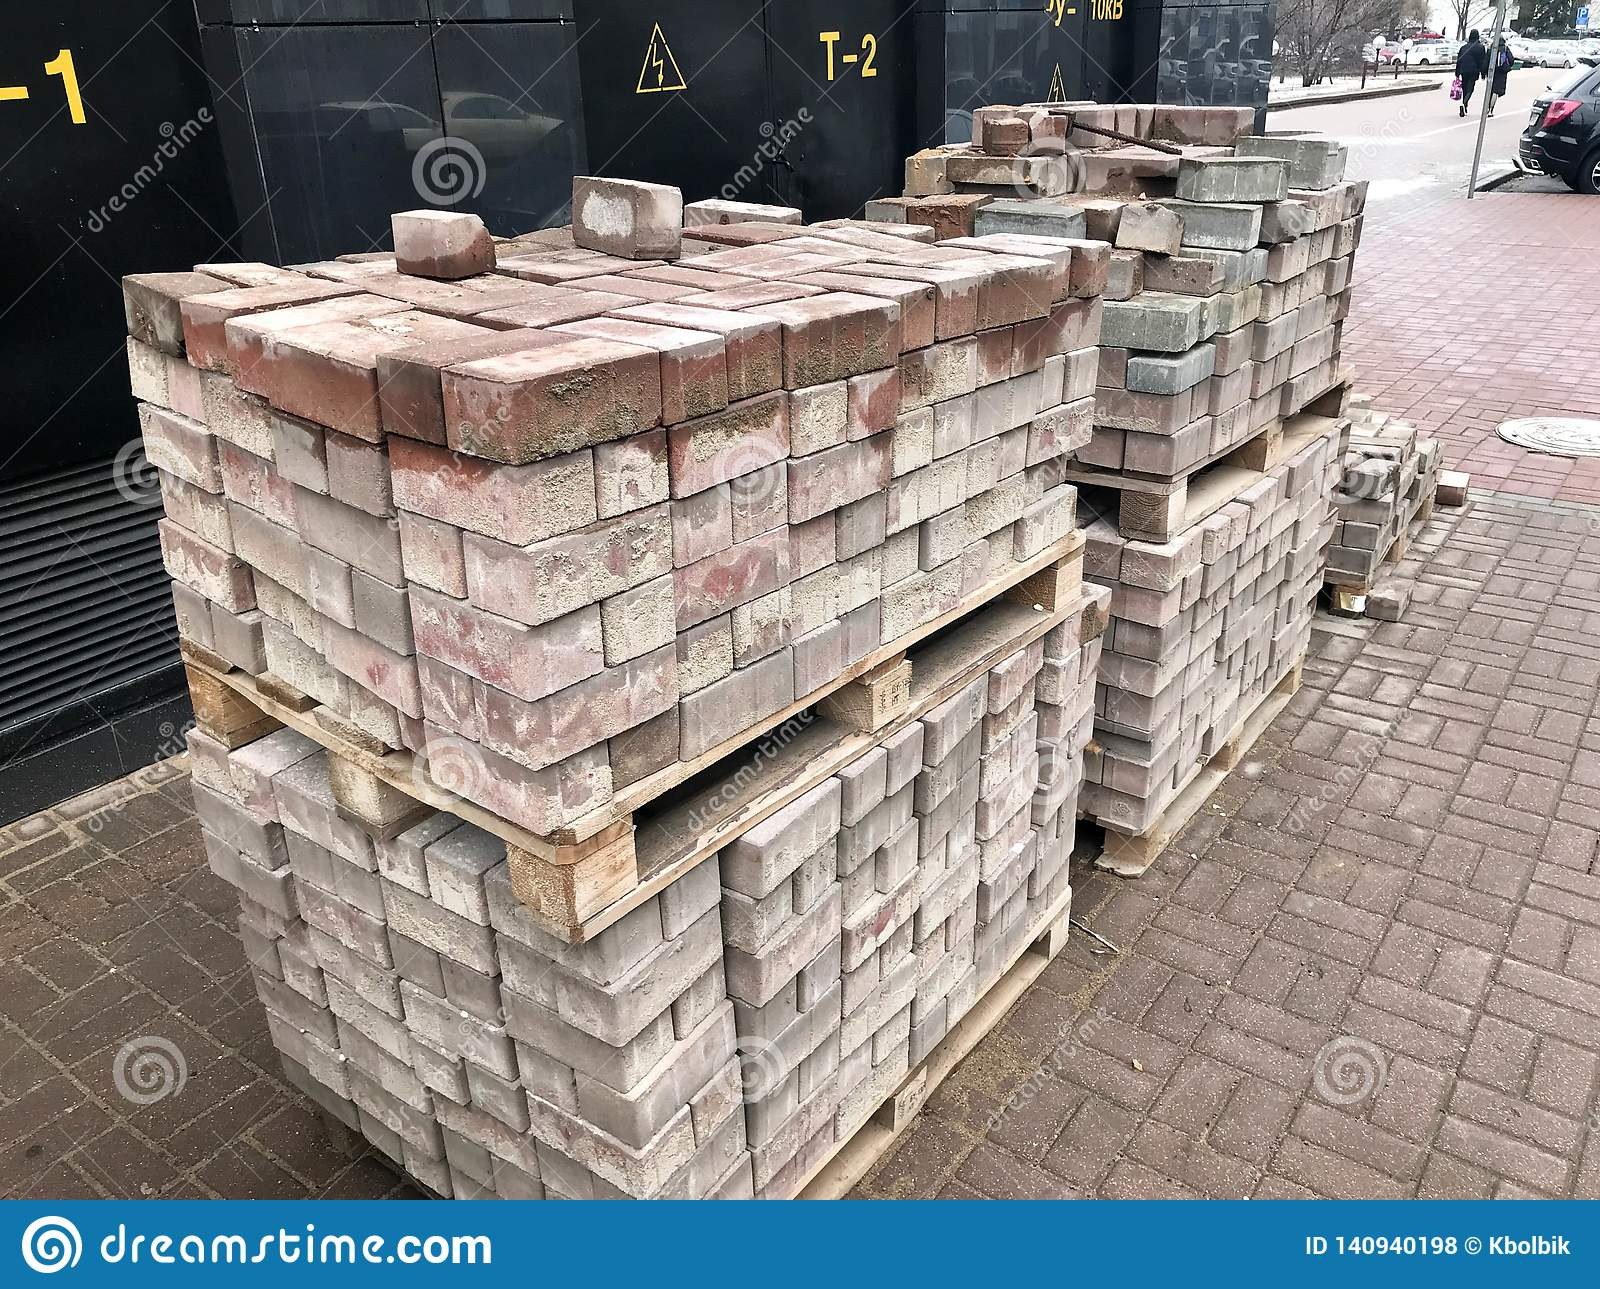 Paving Stone Red Cement Tile For Laying Road Construction Pavement